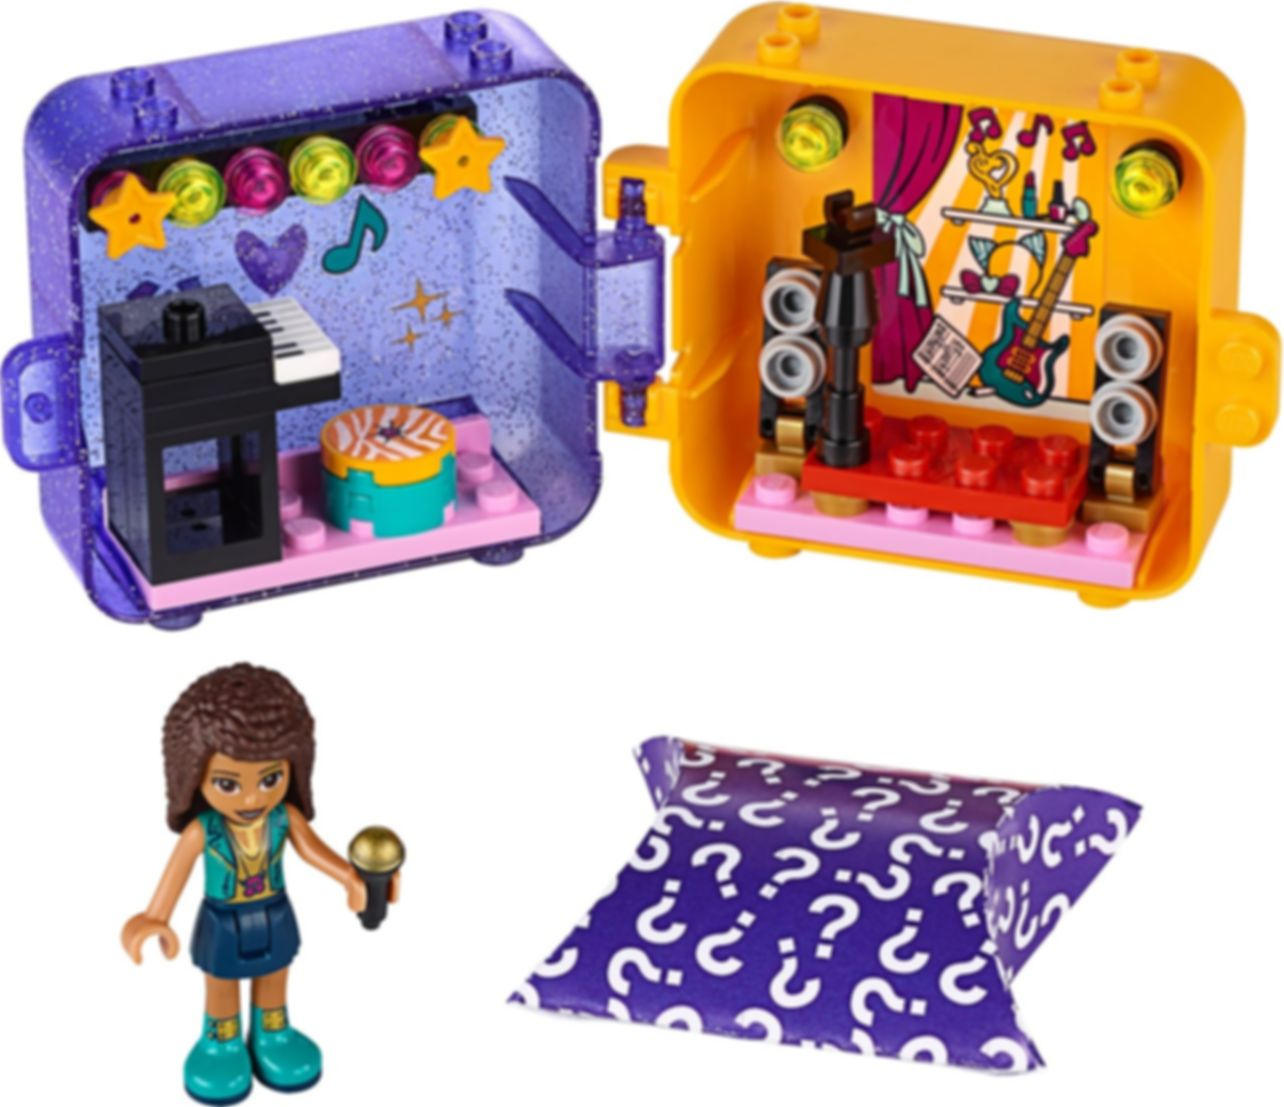 LEGO® Friends Andrea's Play Cube components